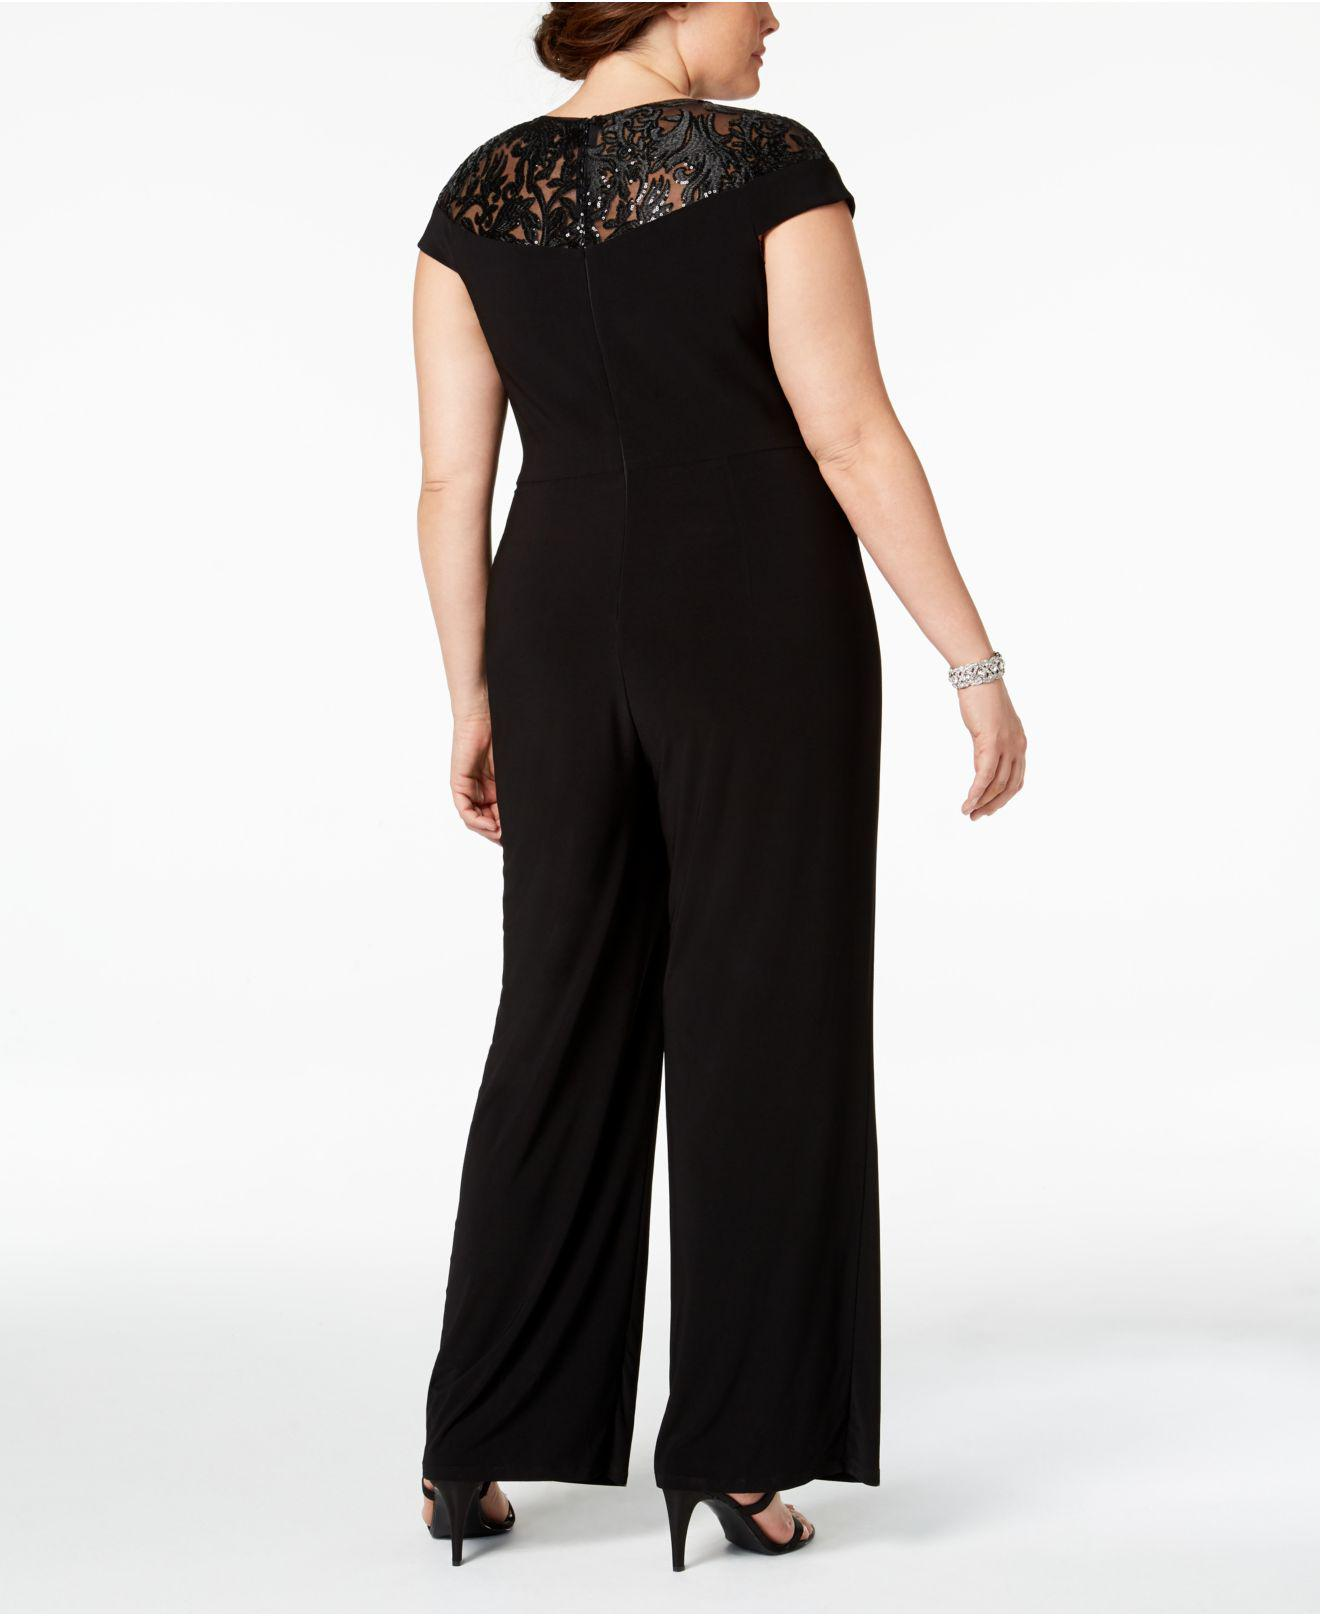 6881be30130 Lyst - Adrianna Papell Plus Size Sequined Jersey Jumpsuit in Black - Save  40%